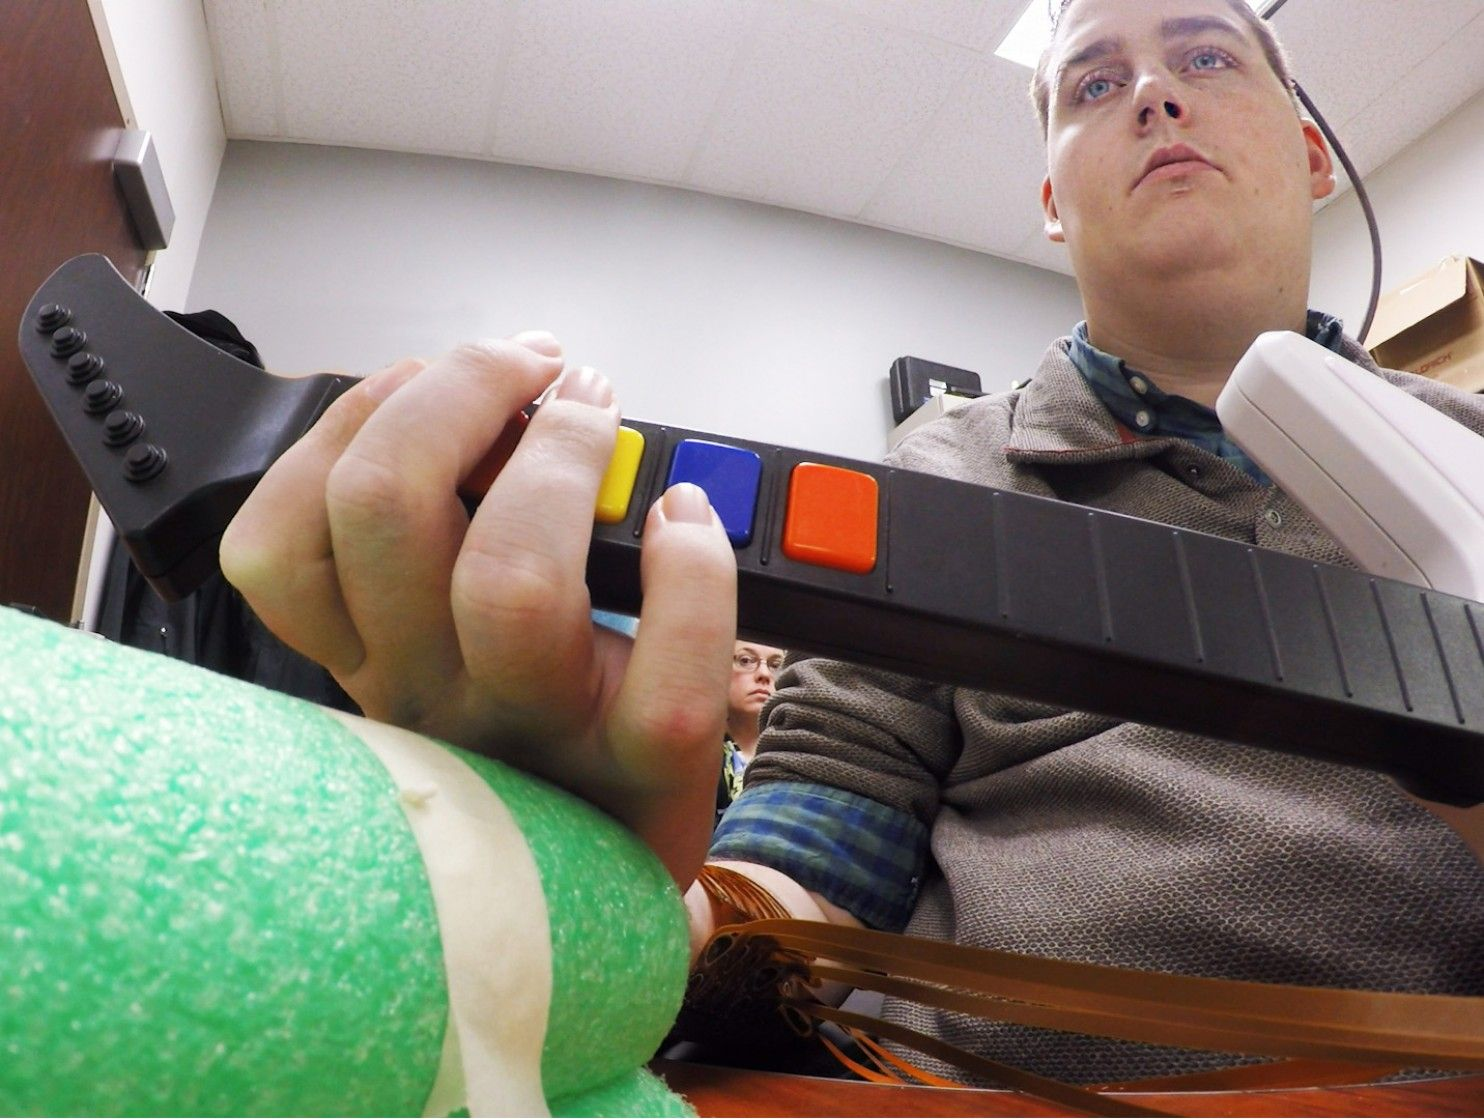 paralyzed brain chip hand guitar hero